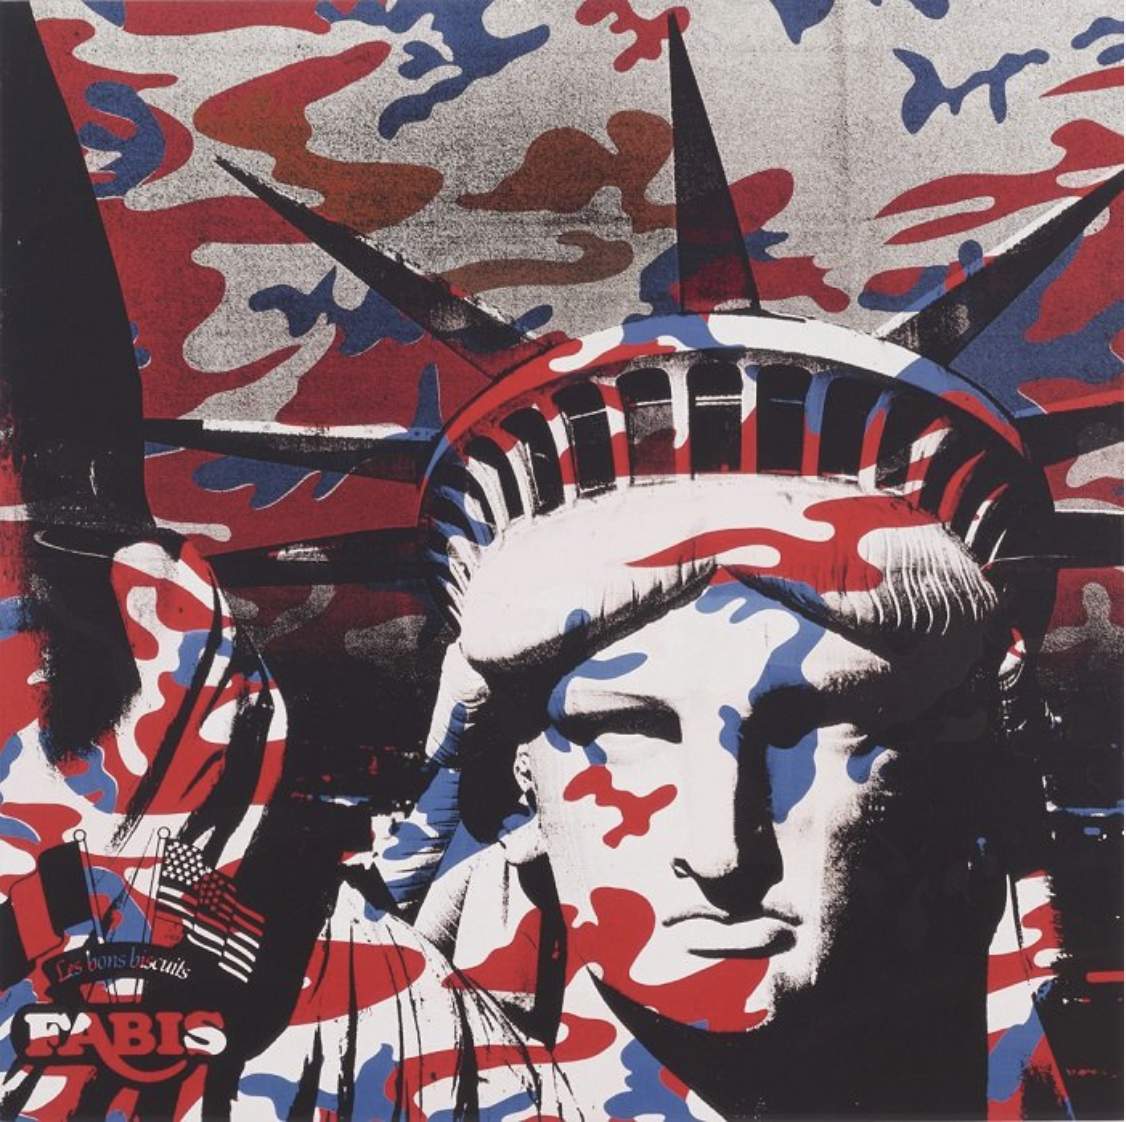 Andy Warhol|Statue of Liberty (Fabis)|1986|The Broad Museum (Los Angeles, USA)